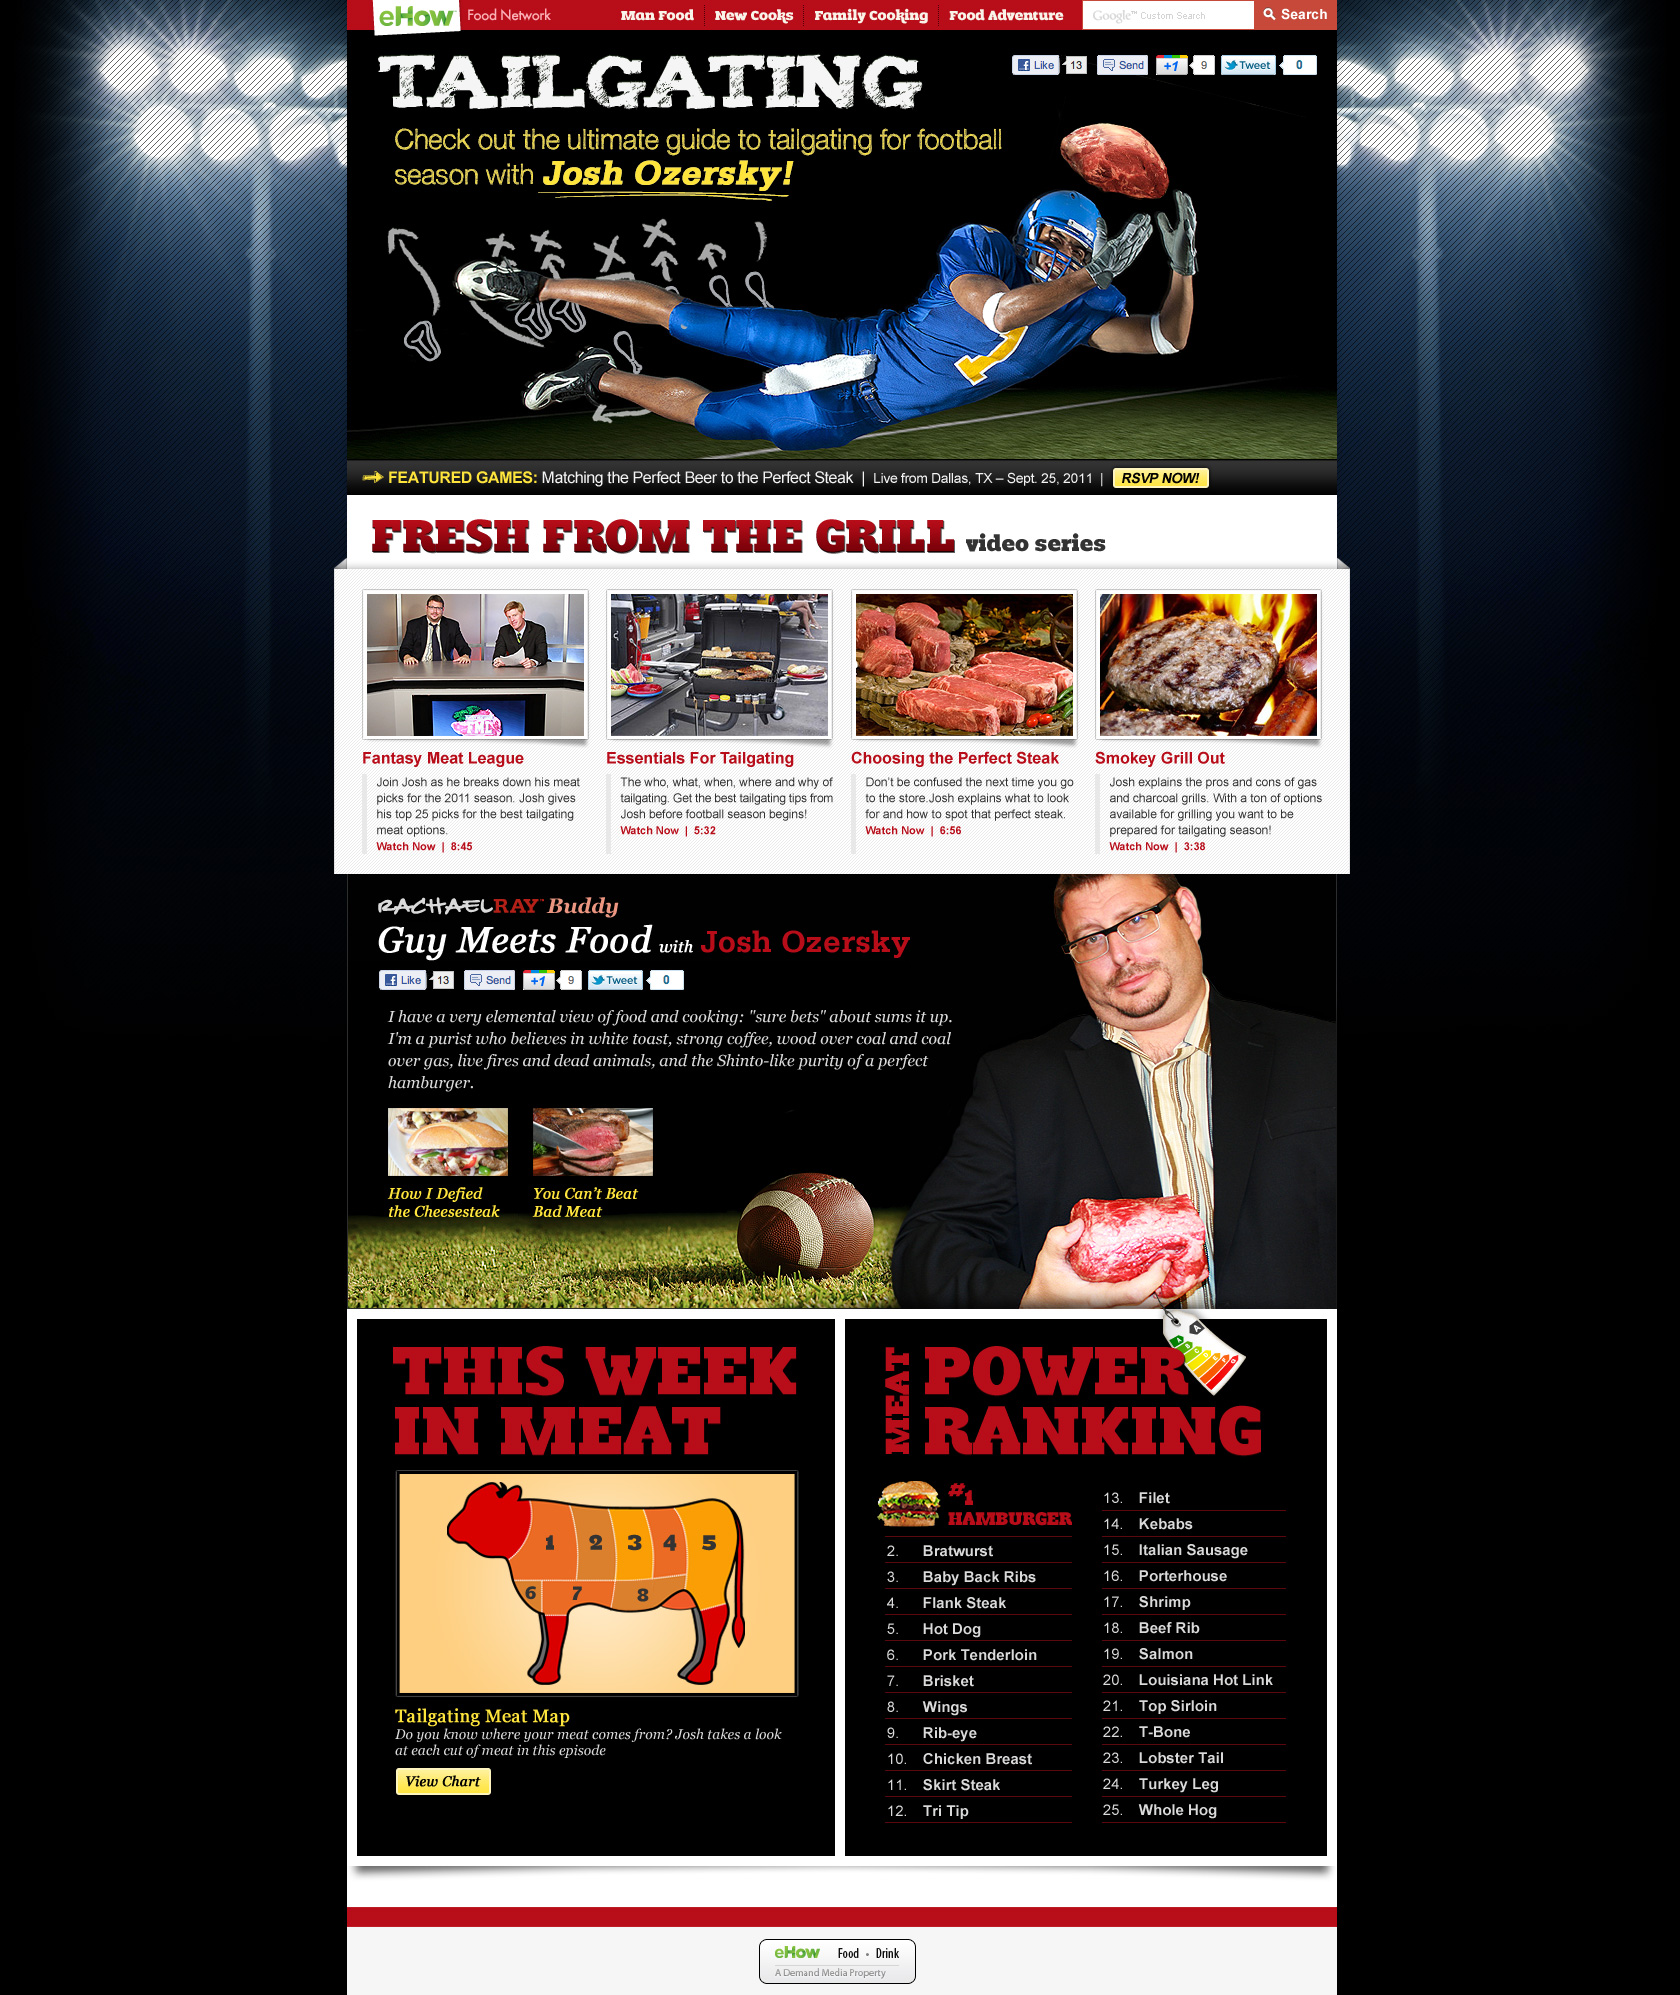 eHow Tailgating Homepage